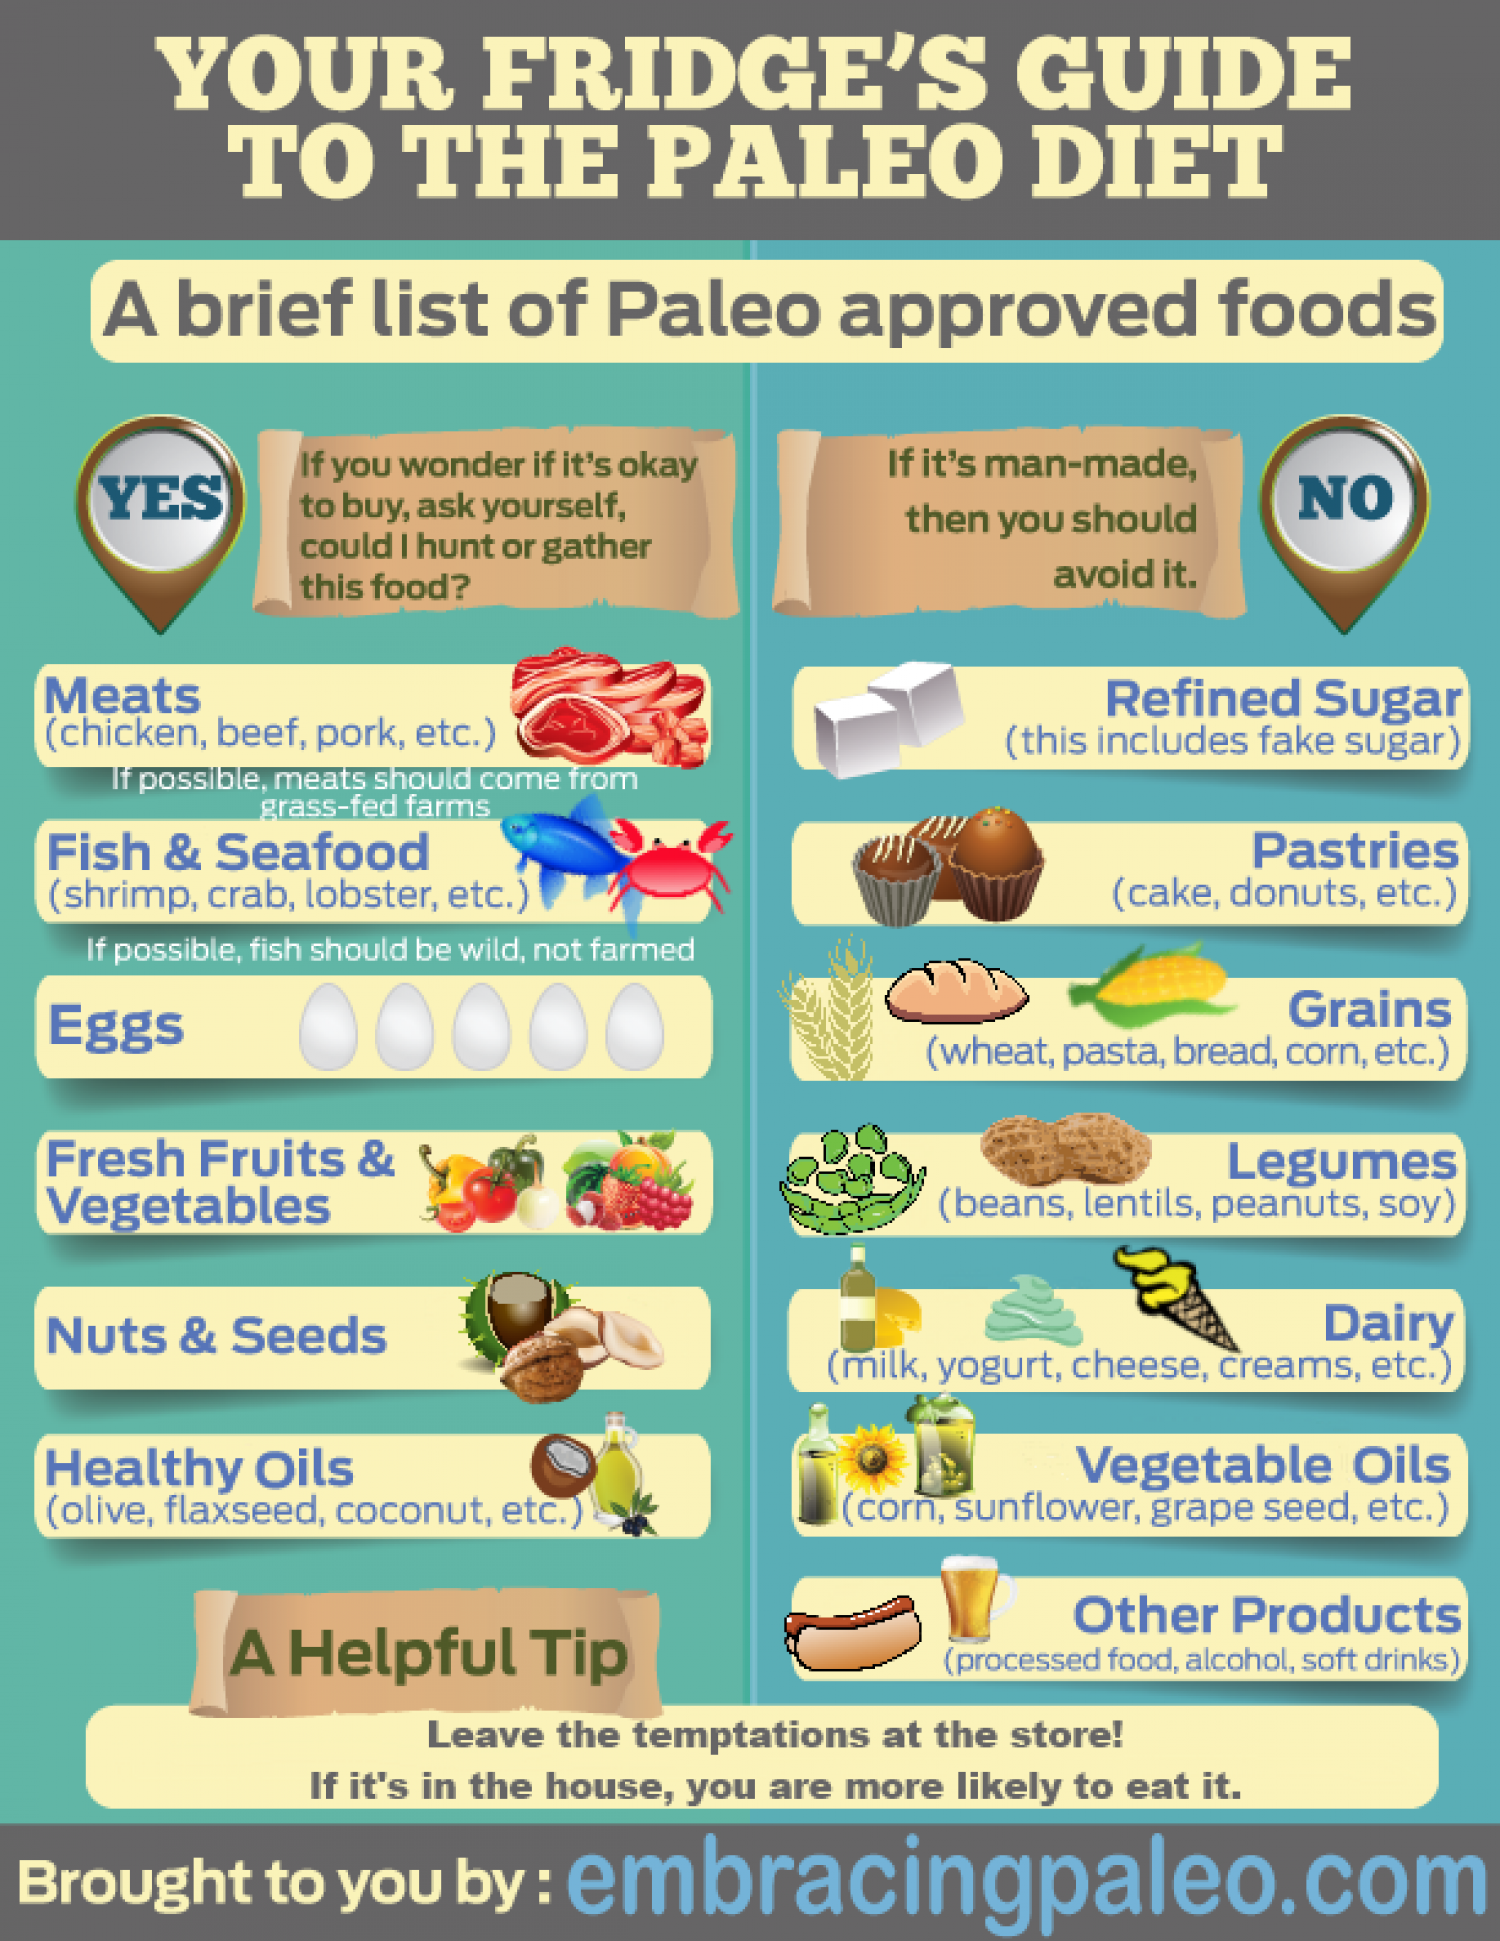 Your Fridge's Guide to the Paleo Diet Infographic